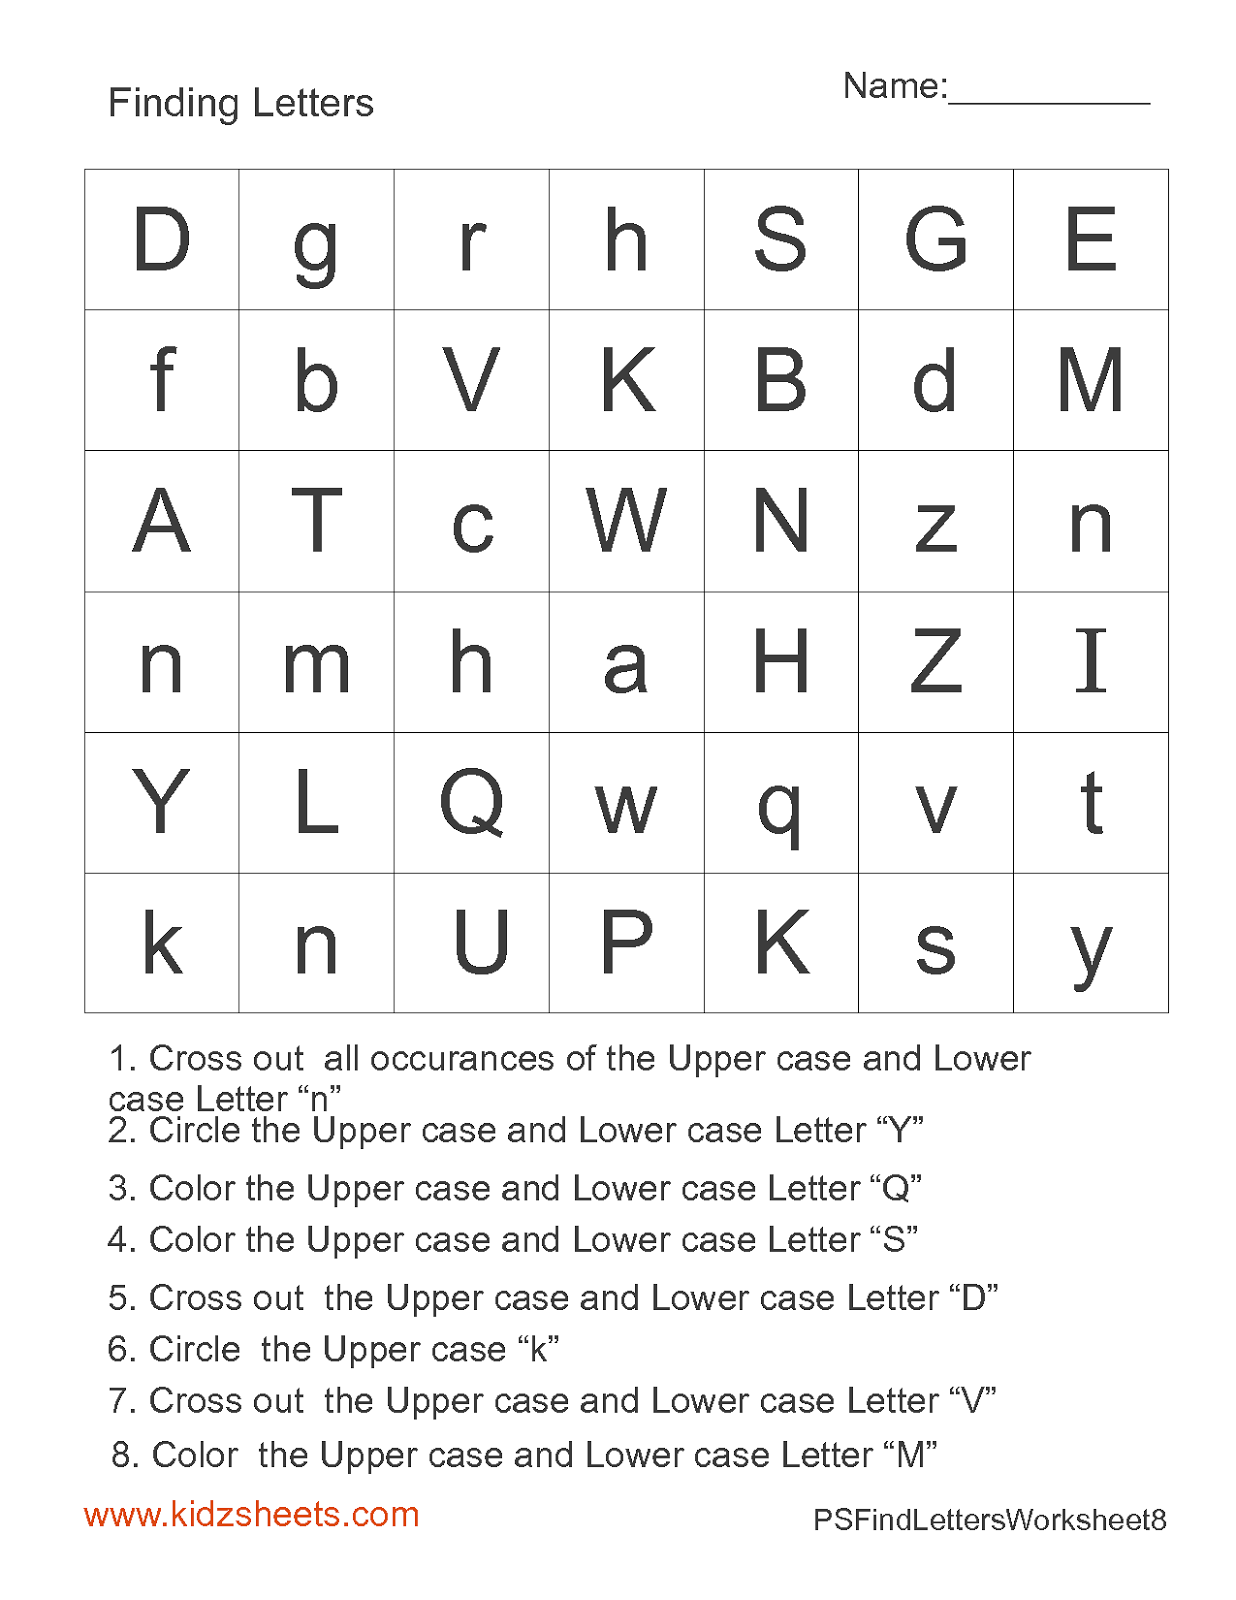 kidz worksheets preschool find letters worksheet8